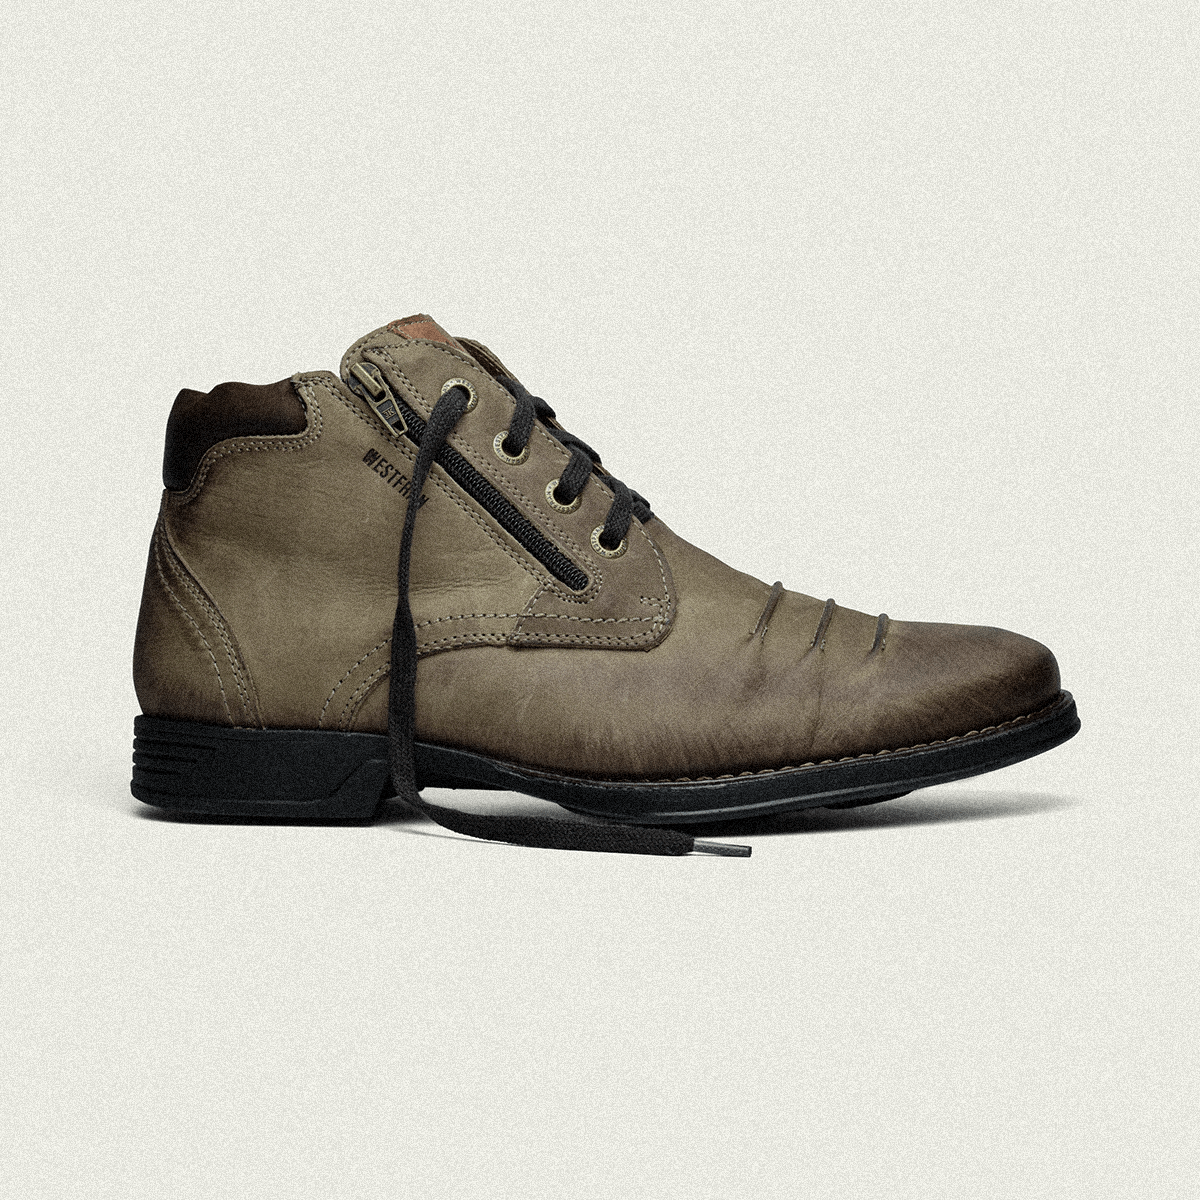 Bota Dress Masculina York 21 Jade Ocre